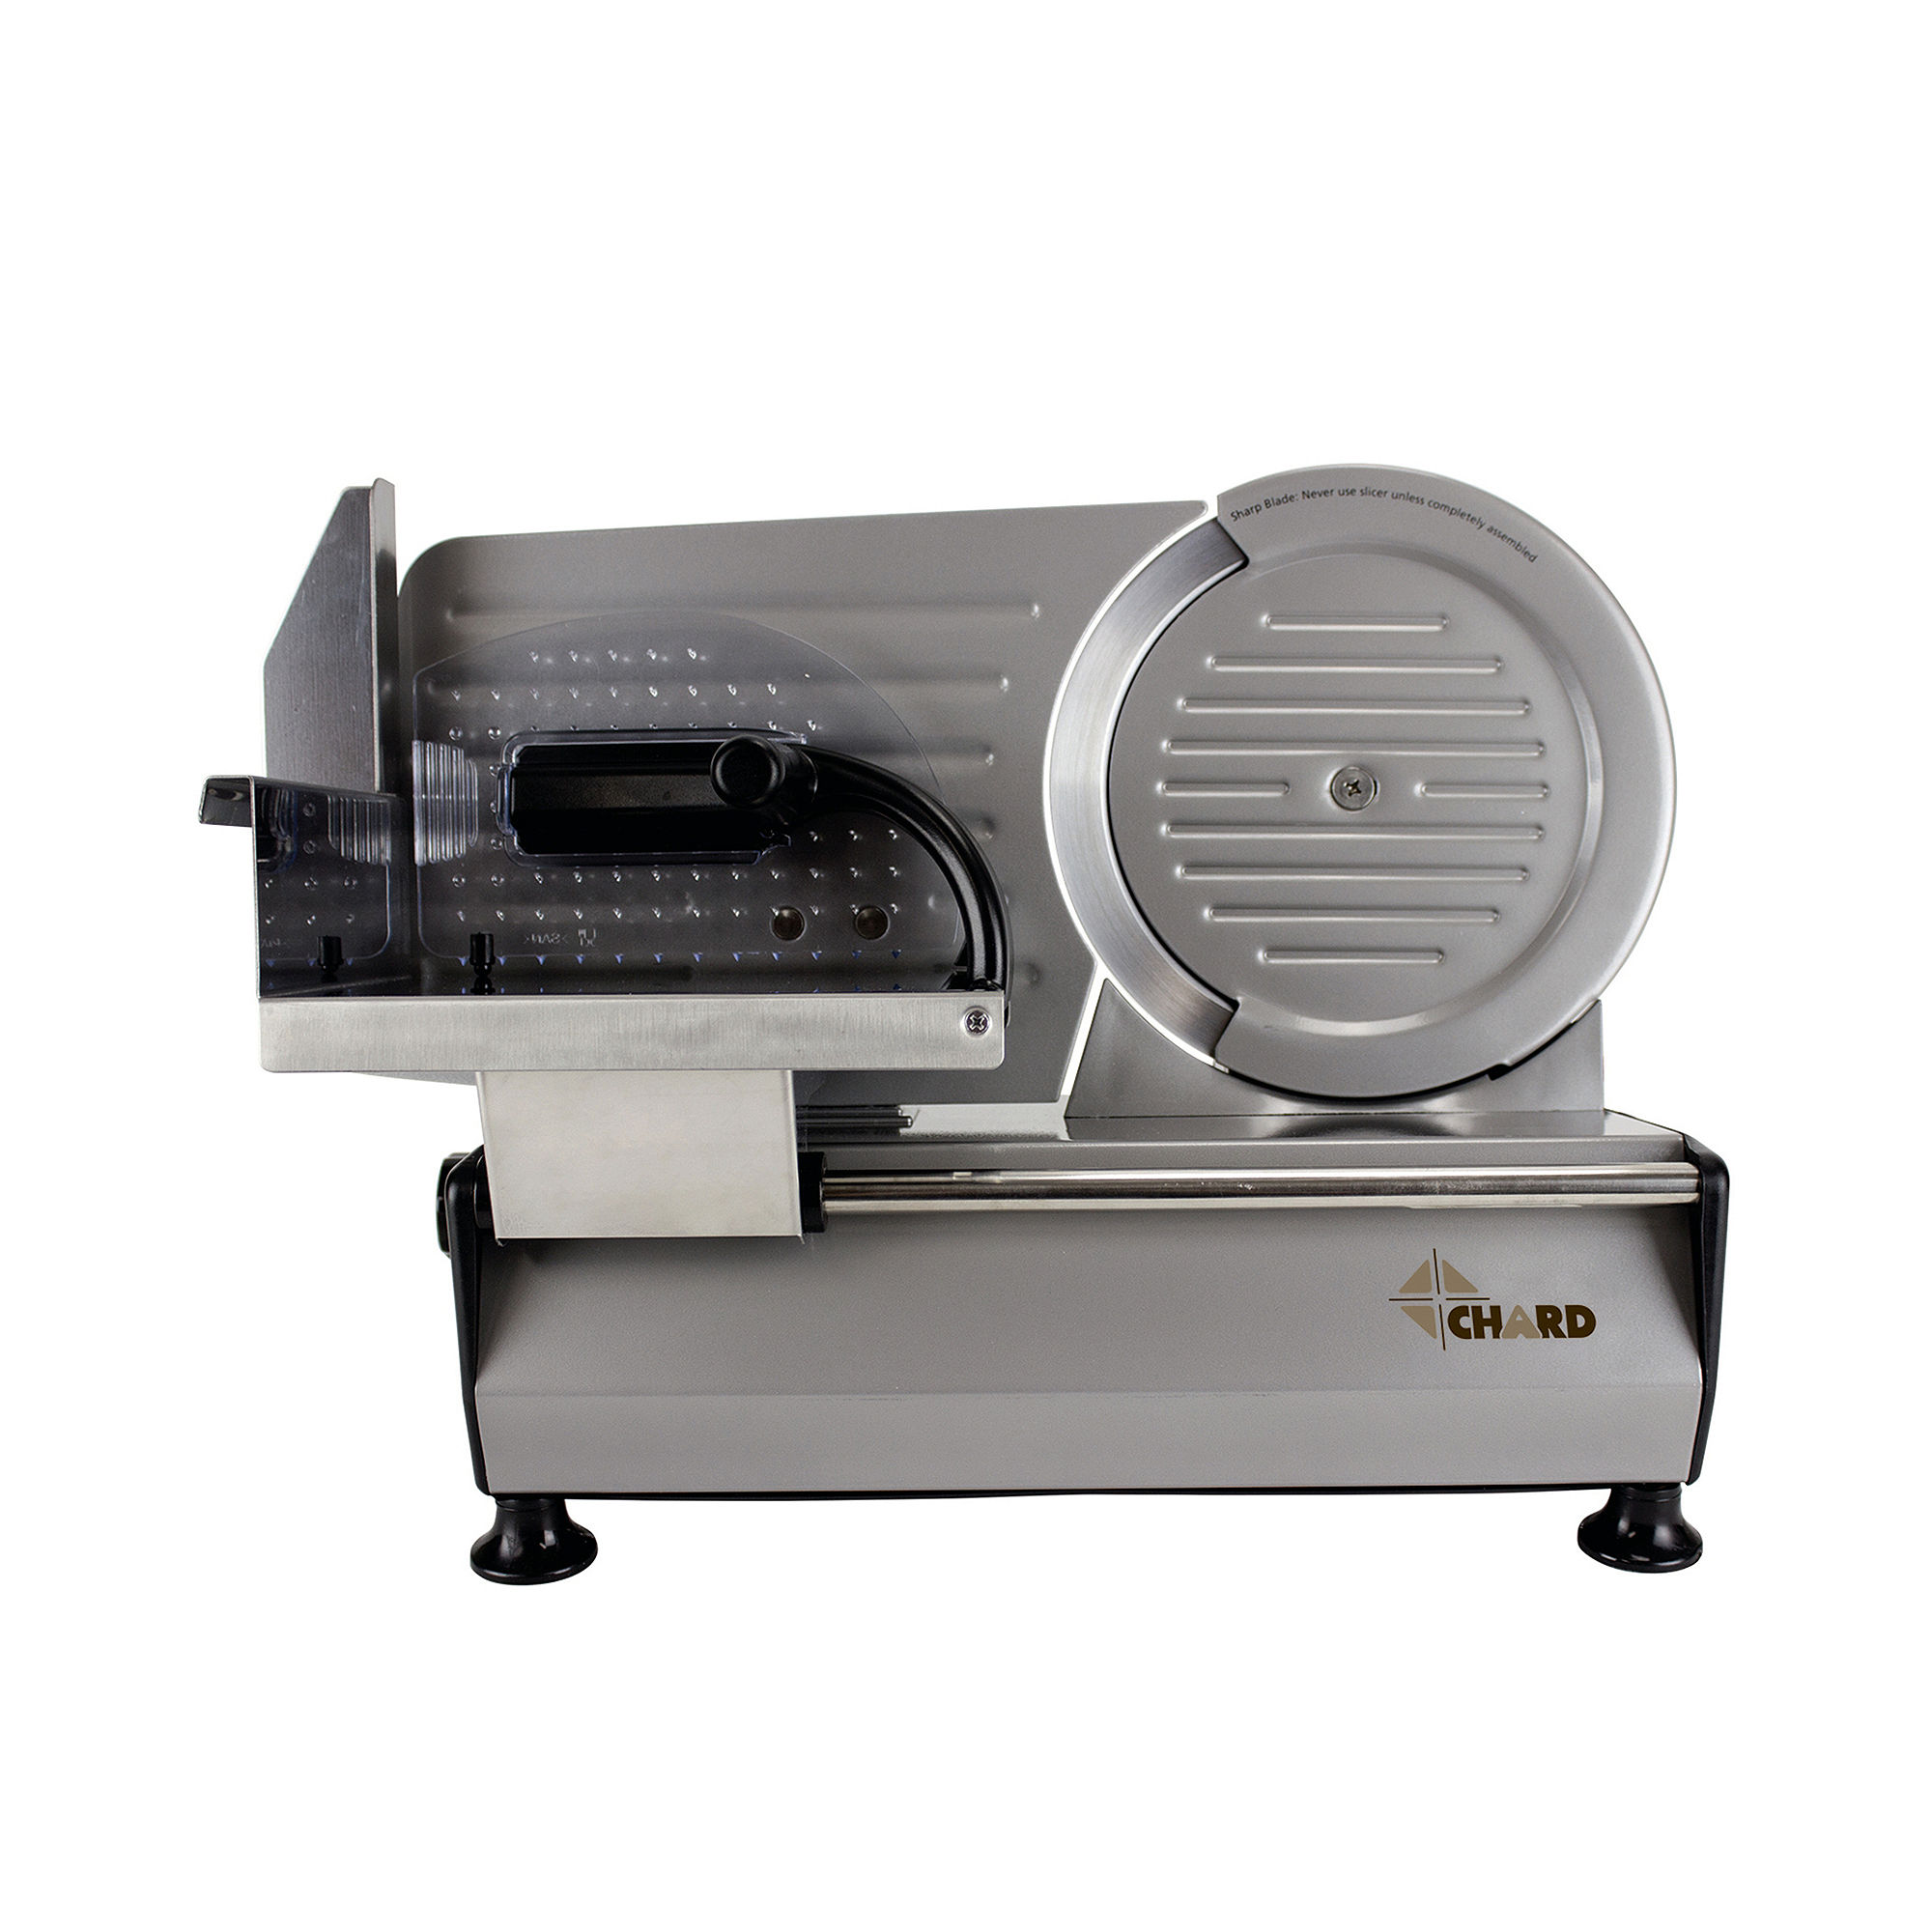 "Chard 8.5"" Electric Meat Slicer"